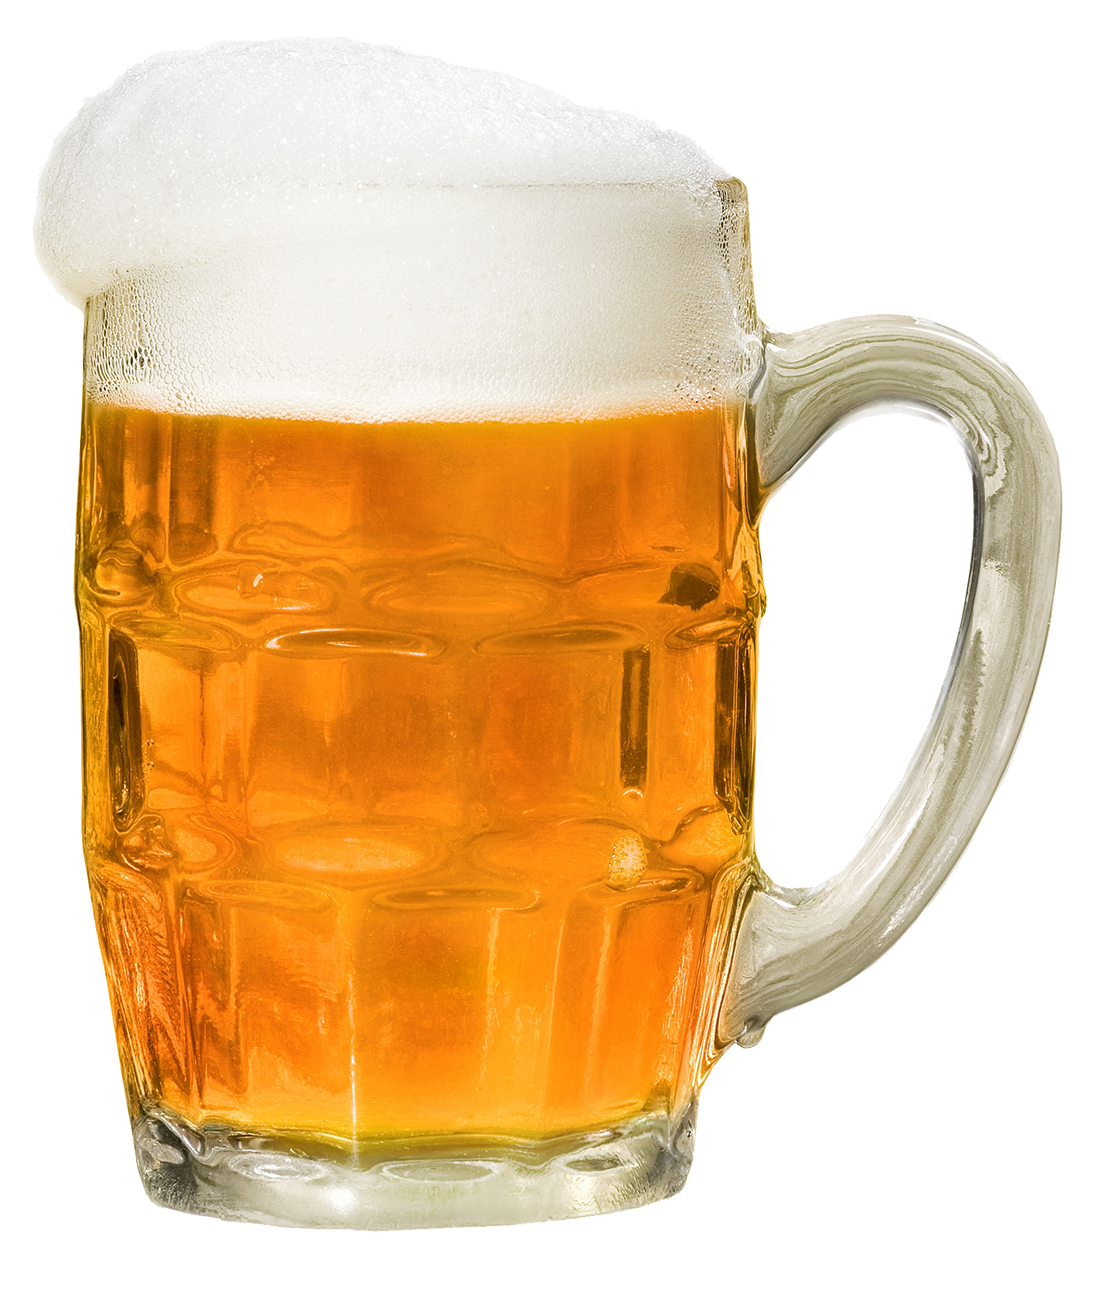 A big icy glass of beer.